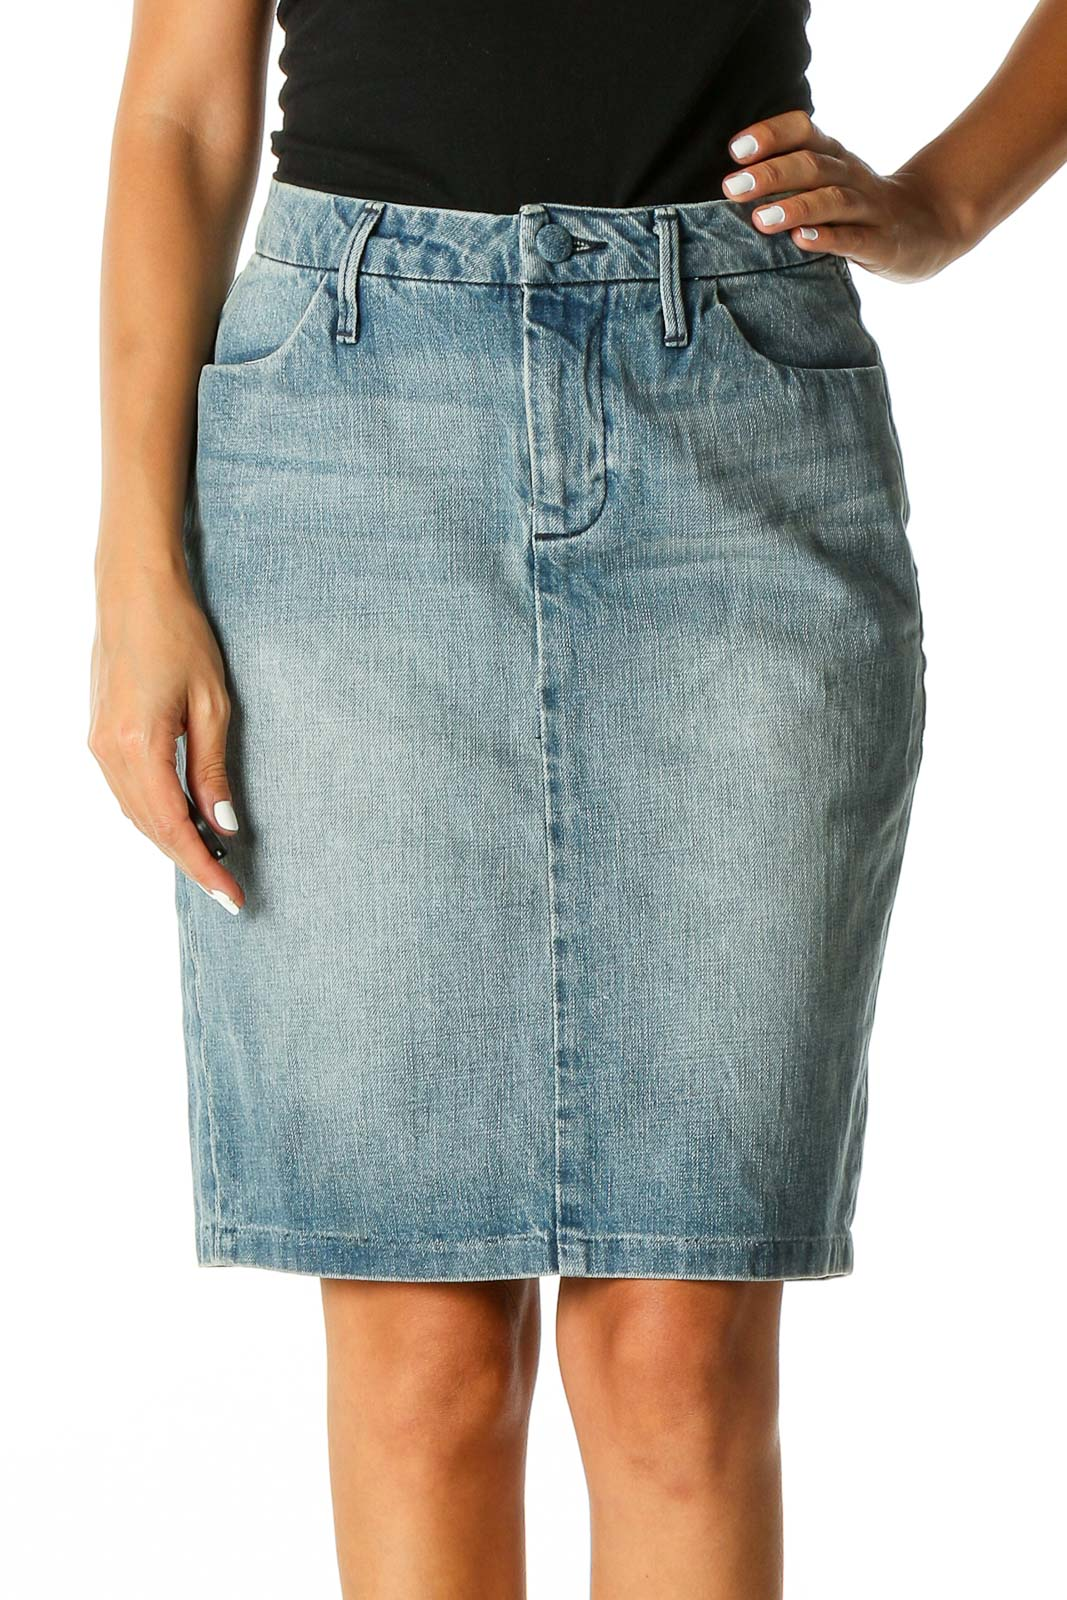 Blue Solid Casual Pencil Skirt Front